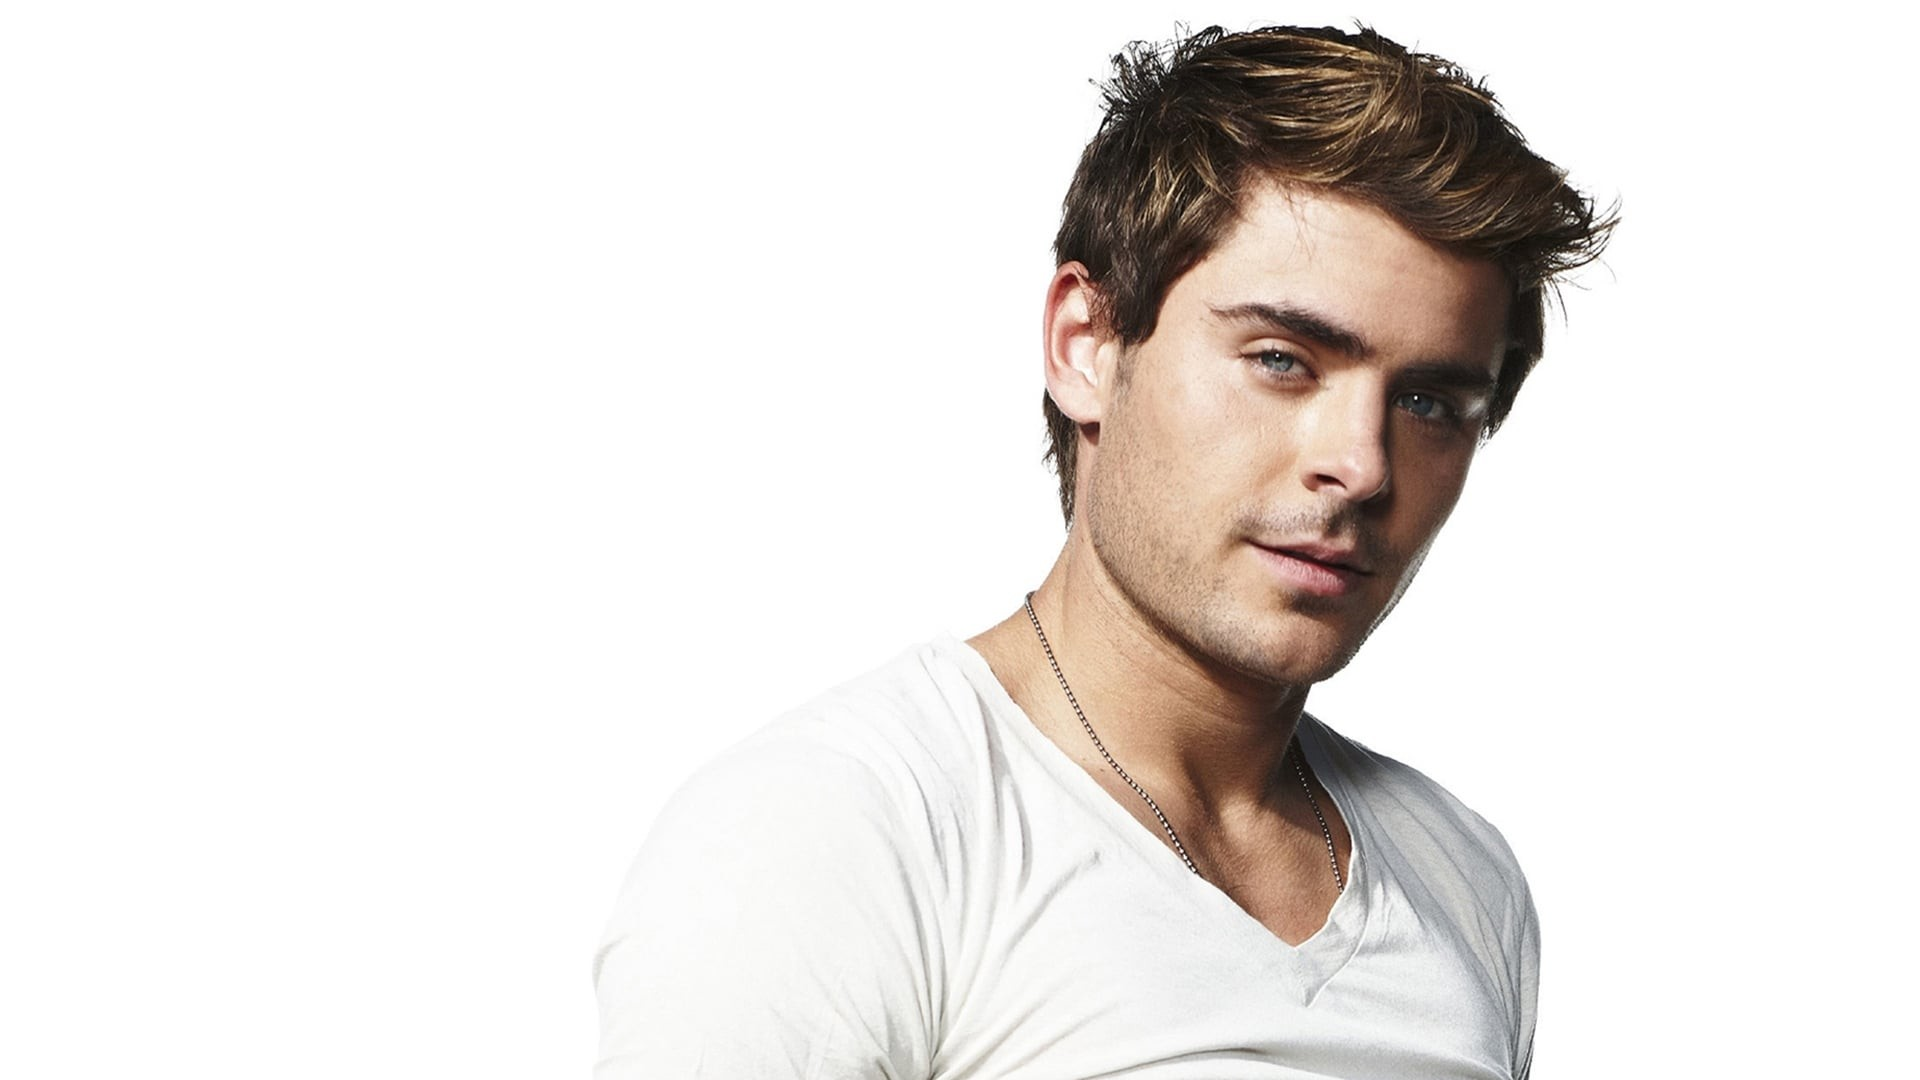 Res: 1920x1080, Zac Efron HD wallpapers Download